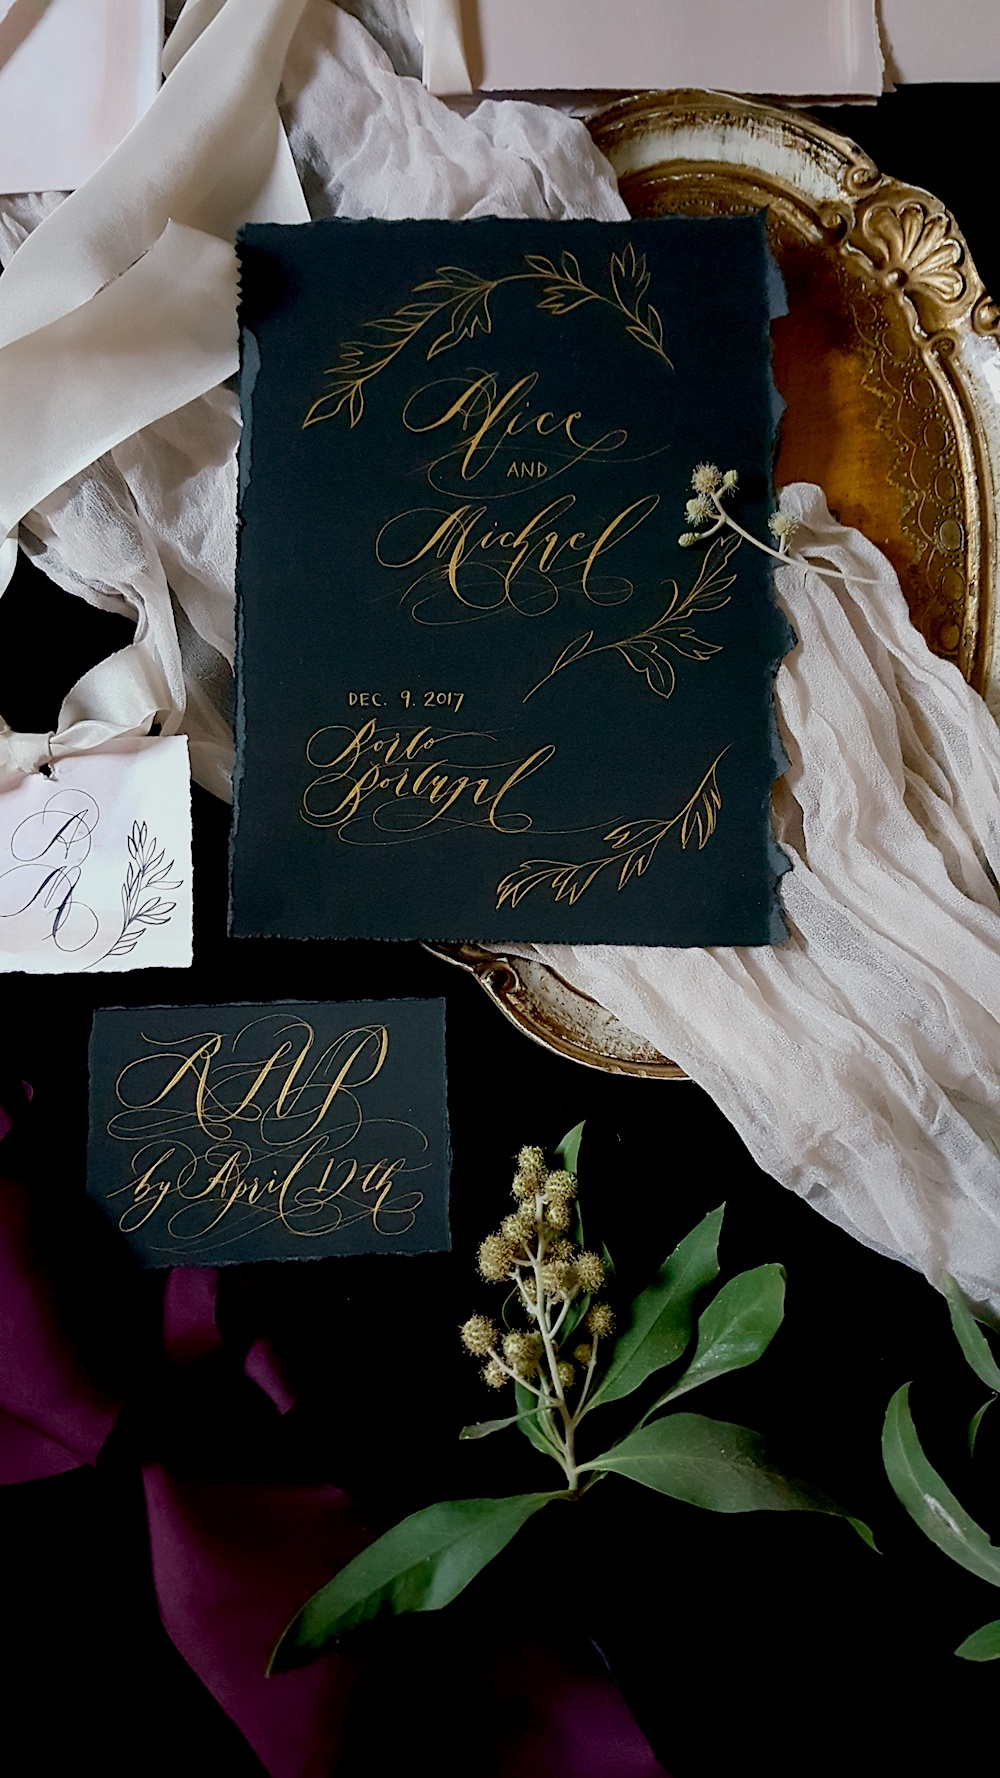 Black Tie Party Invitations ONLY FOR LUXURY CLIENTS